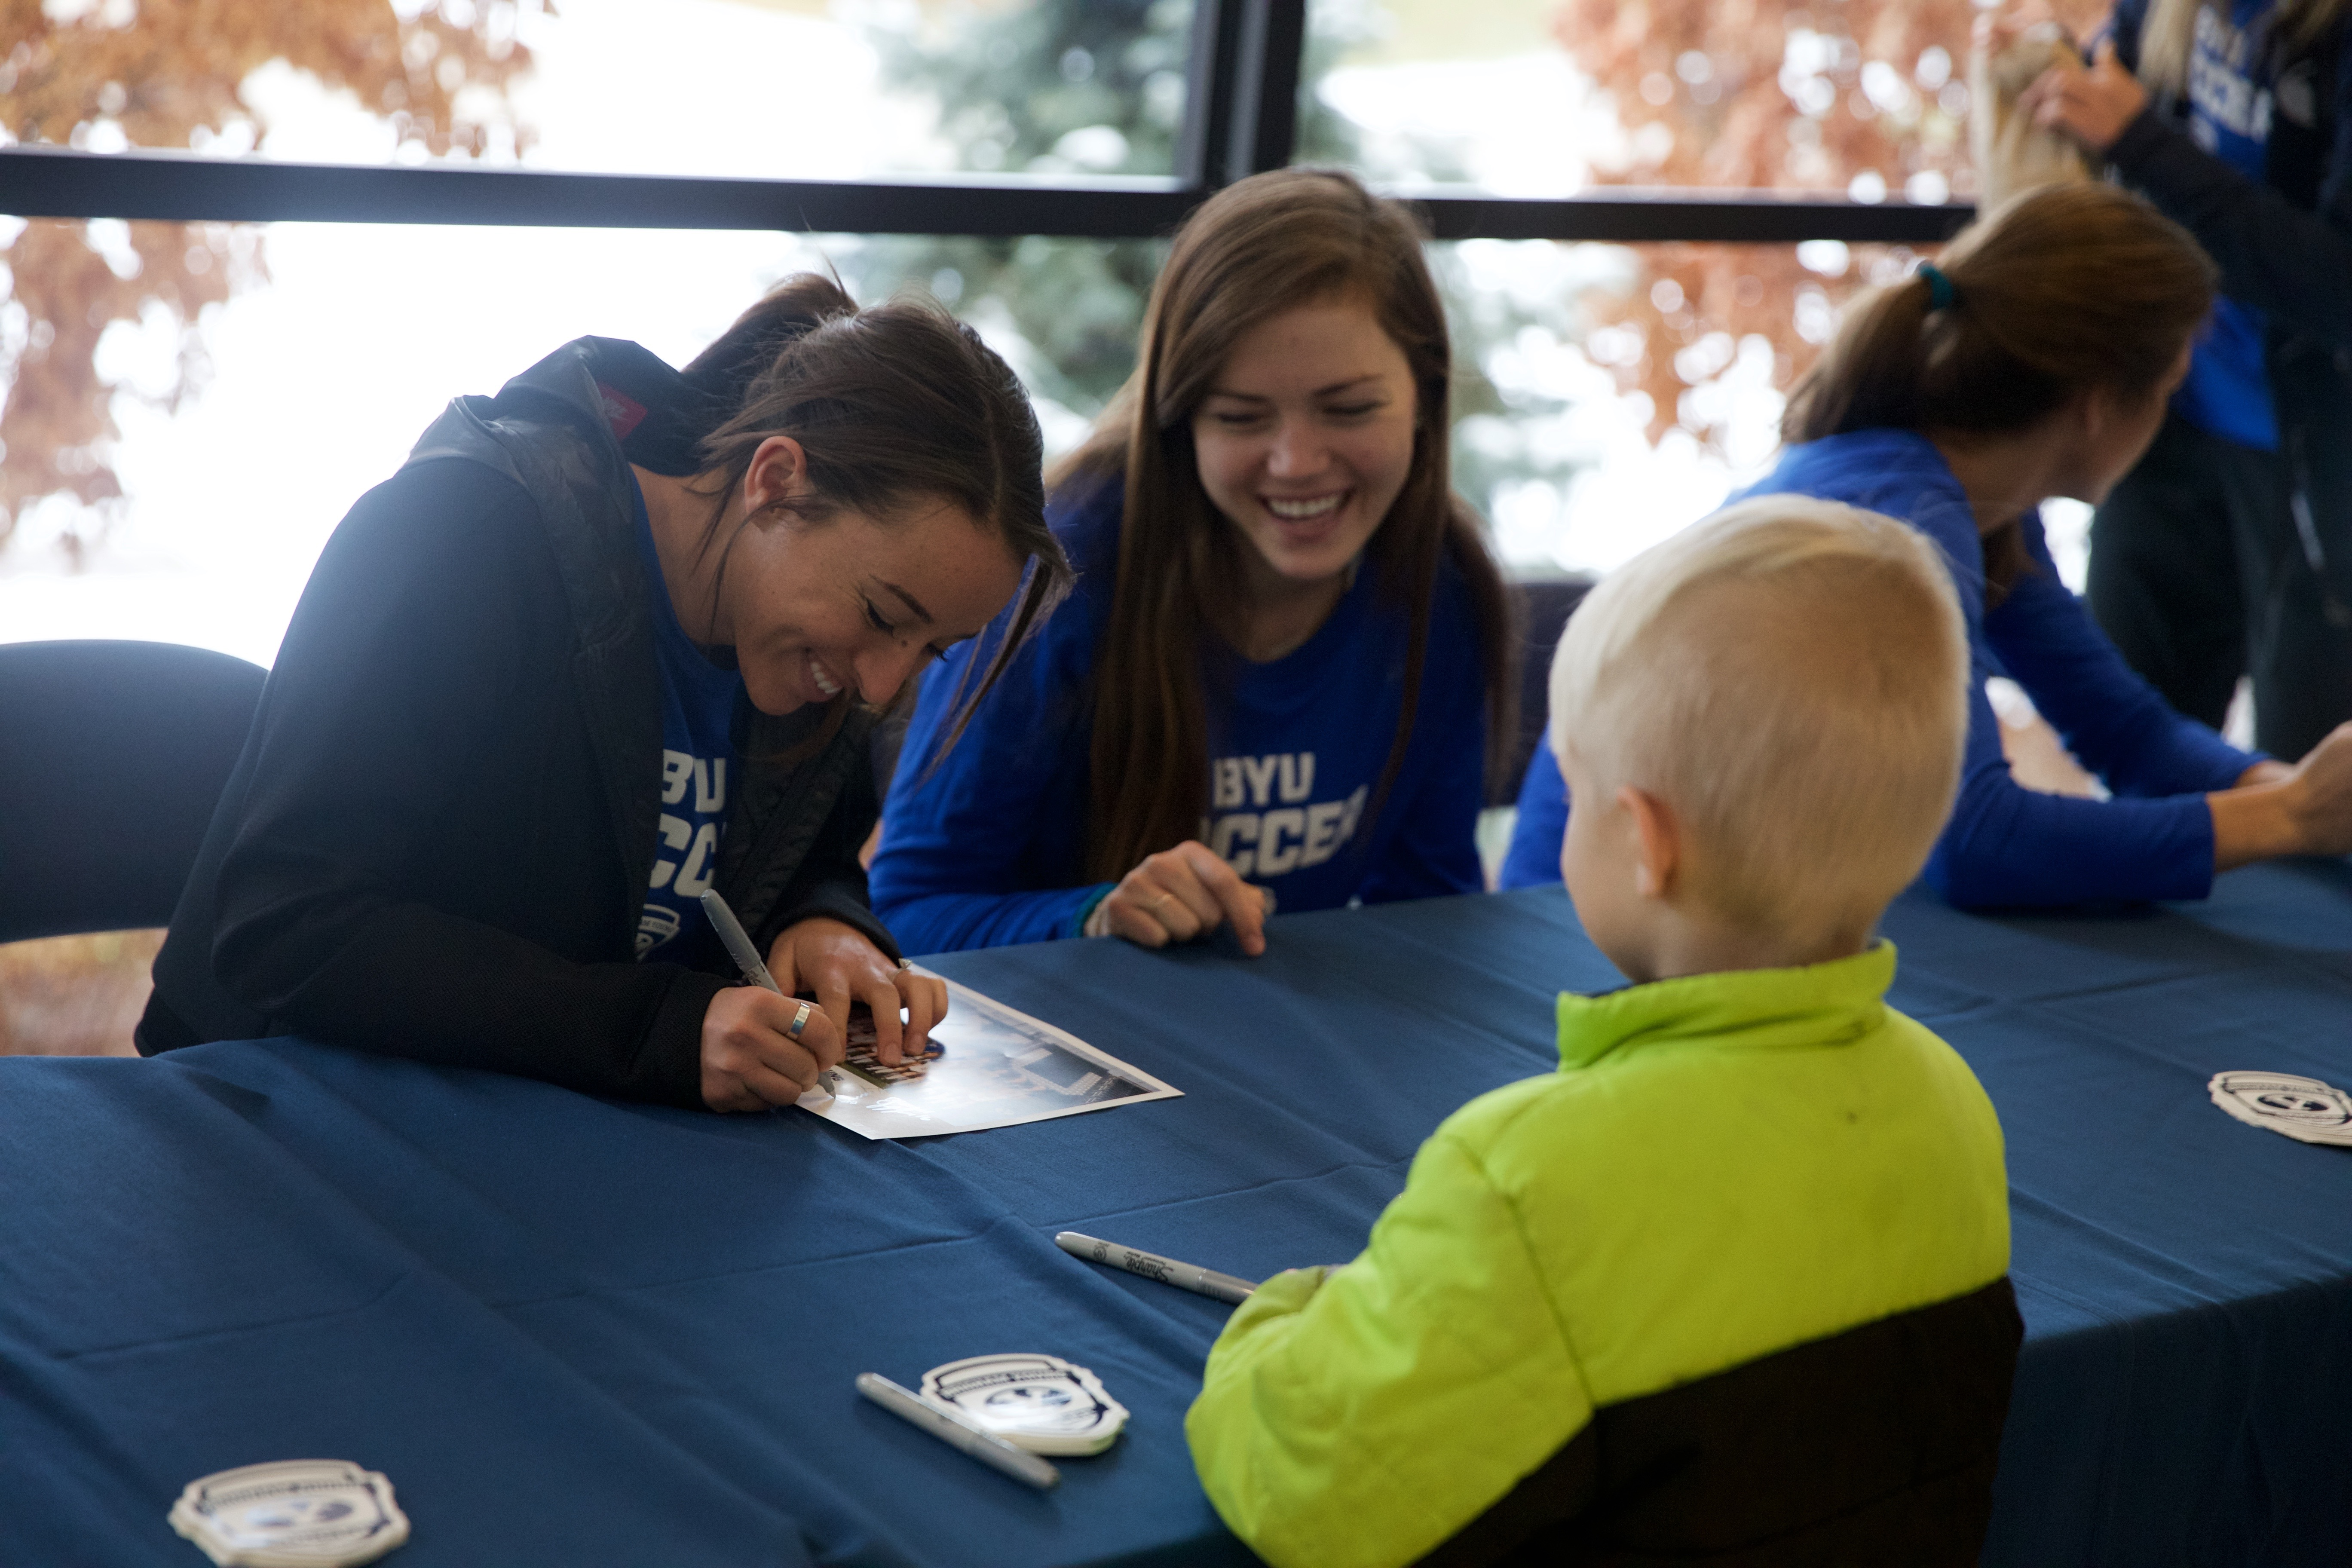 Members of the BYU women's soccer team signs autographs for a young fan. (Maddi Driggs)